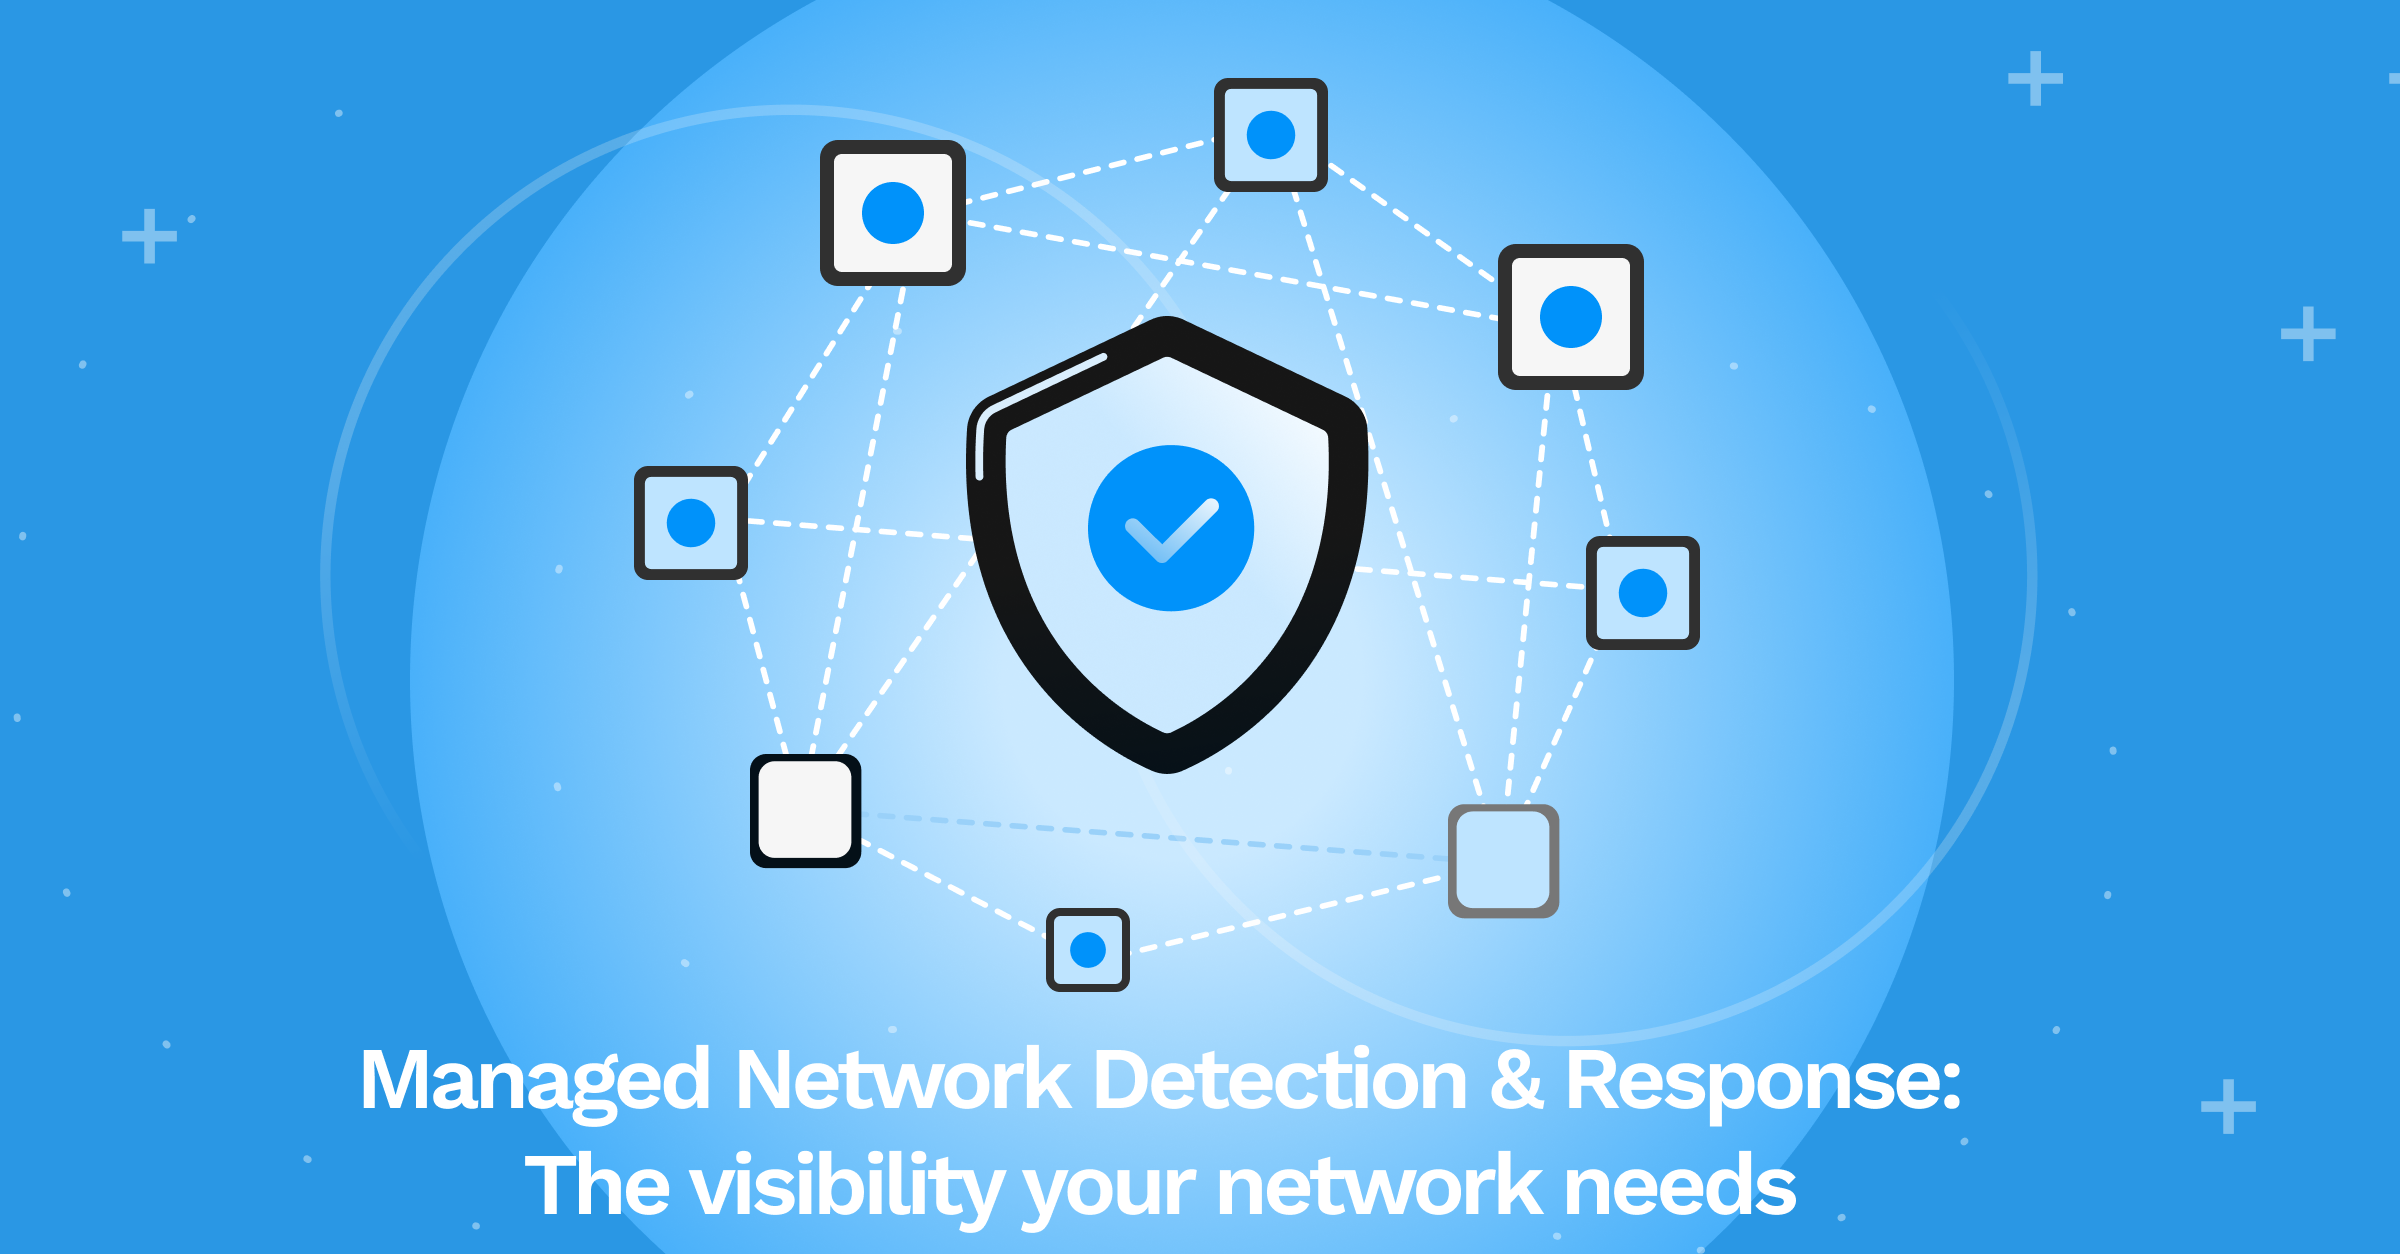 Managed Network Detection & Response: The visibility your network needs